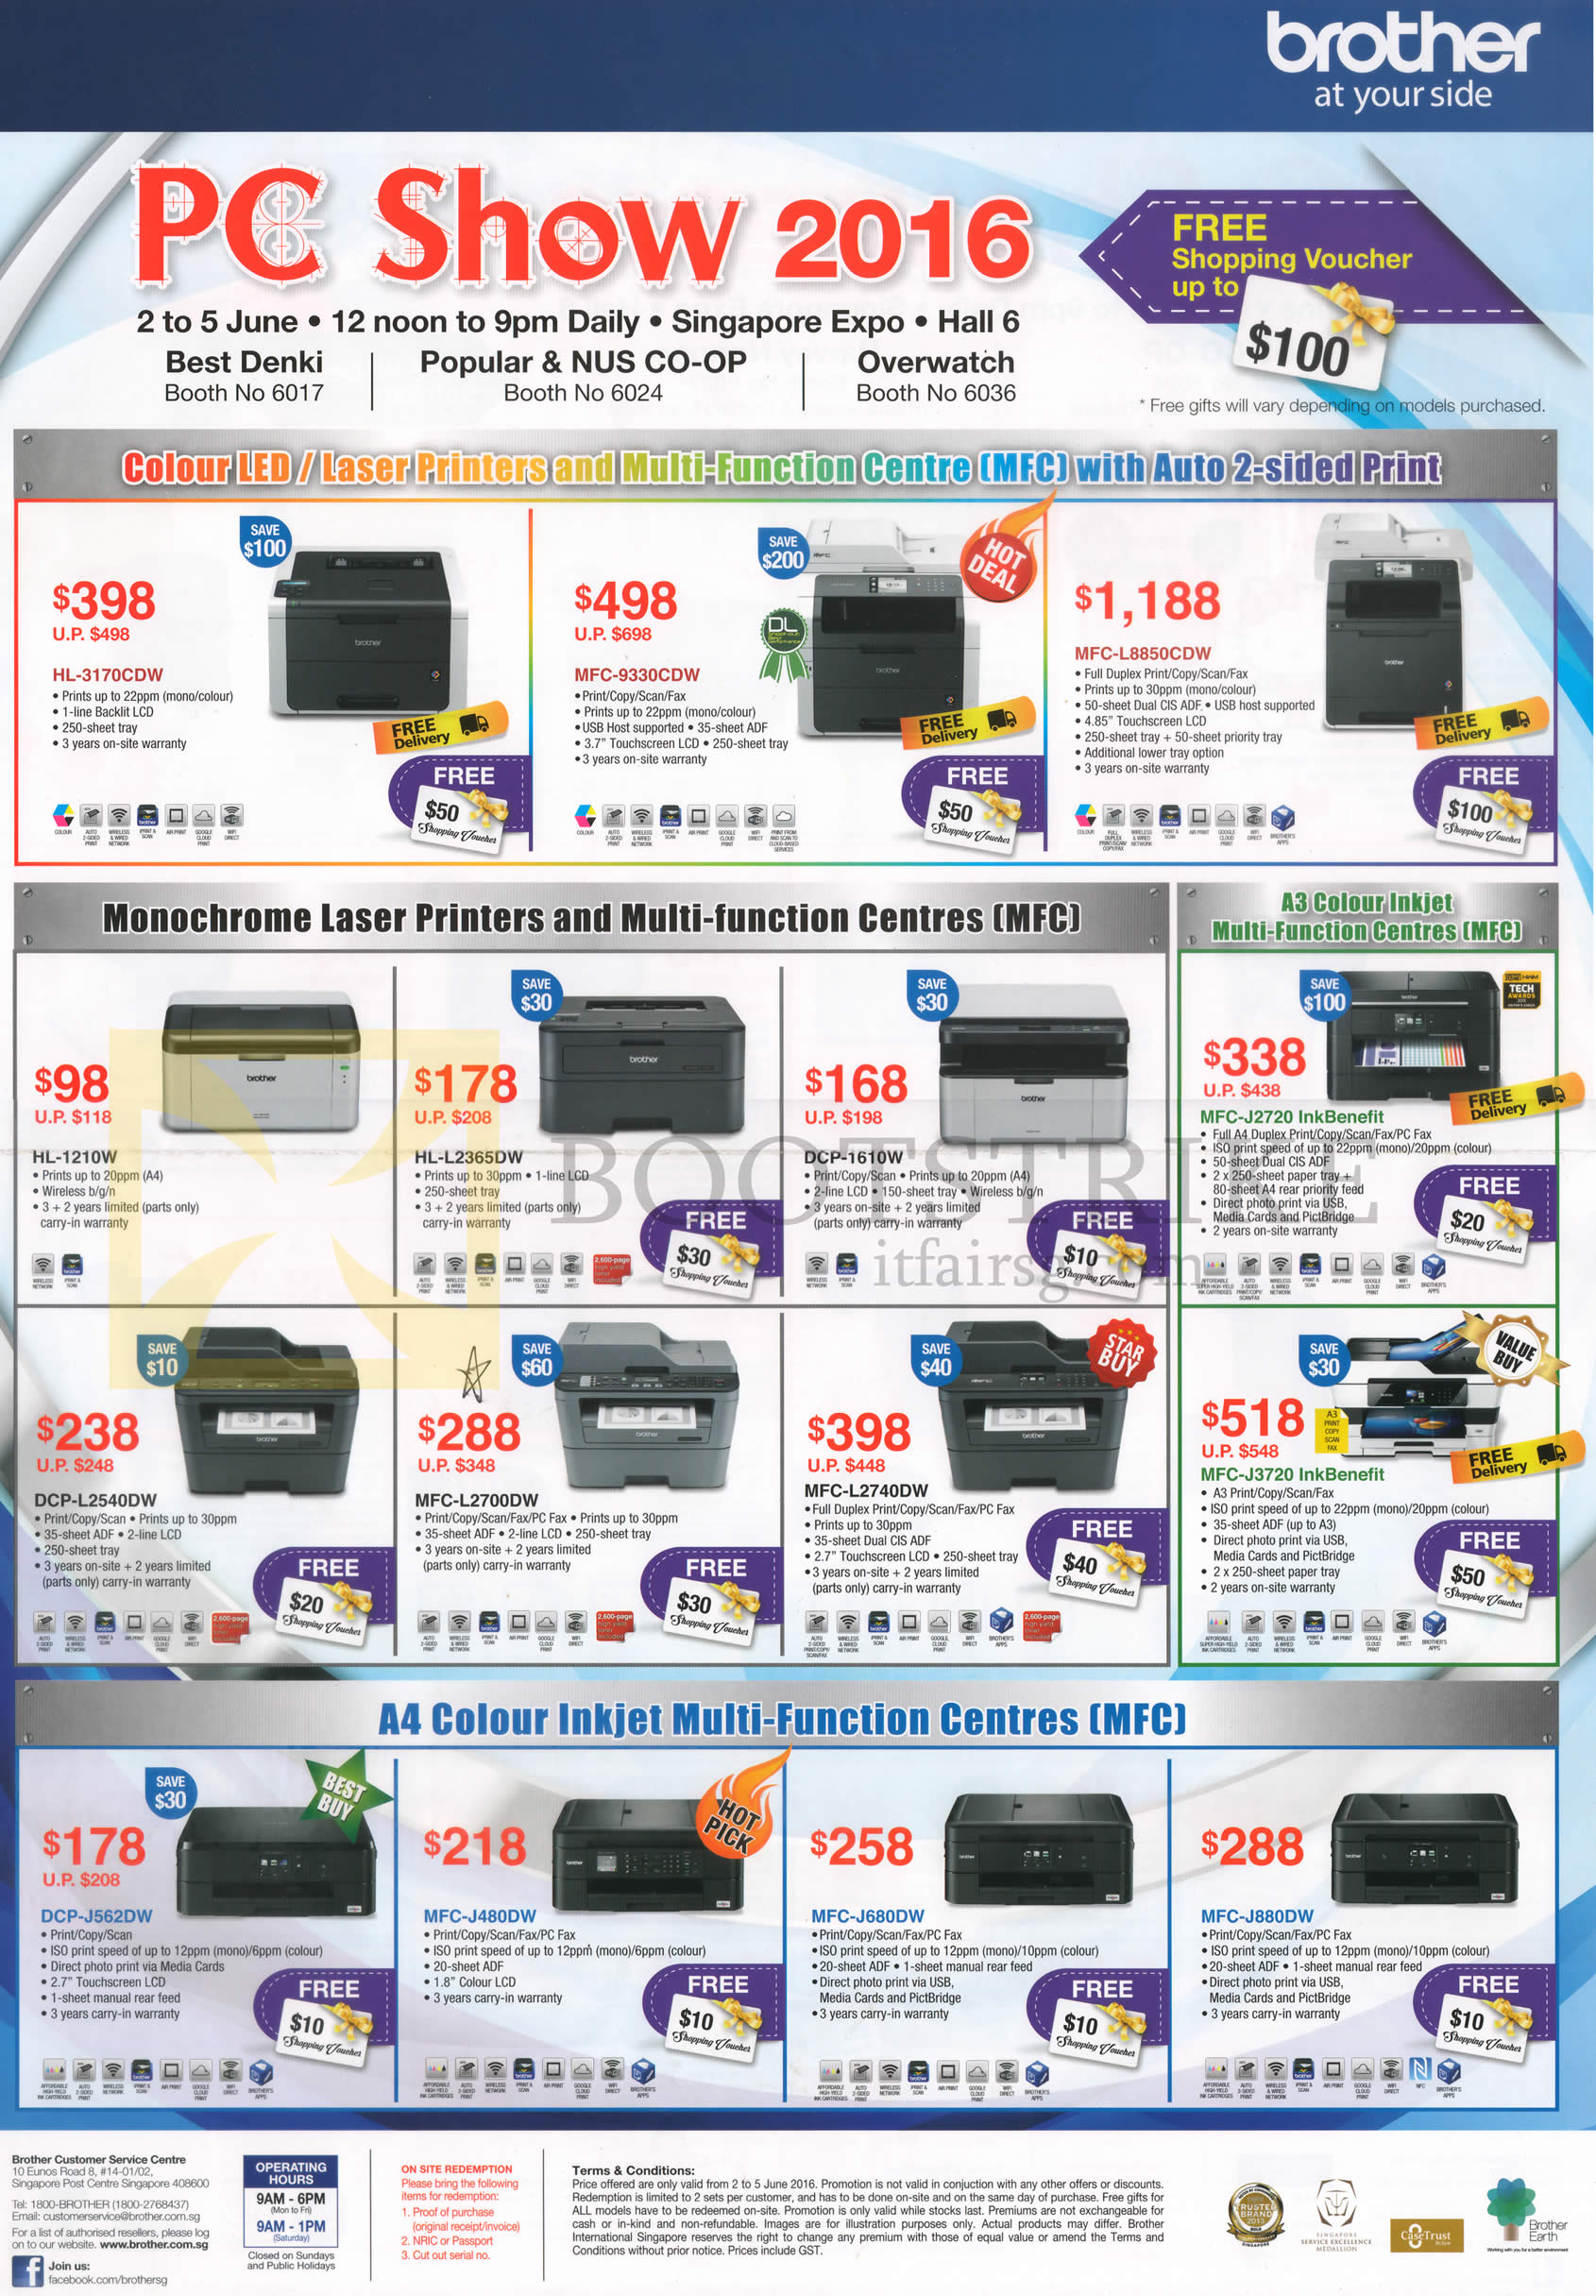 PC SHOW 2016 price list image brochure of Brother Printers Laser HL-3170CDW, 1210W, L2365DW, DCP-1610W, L2540DW, J562DW, MFC-L2700DW, L2740DW, J3720 InkBenefit